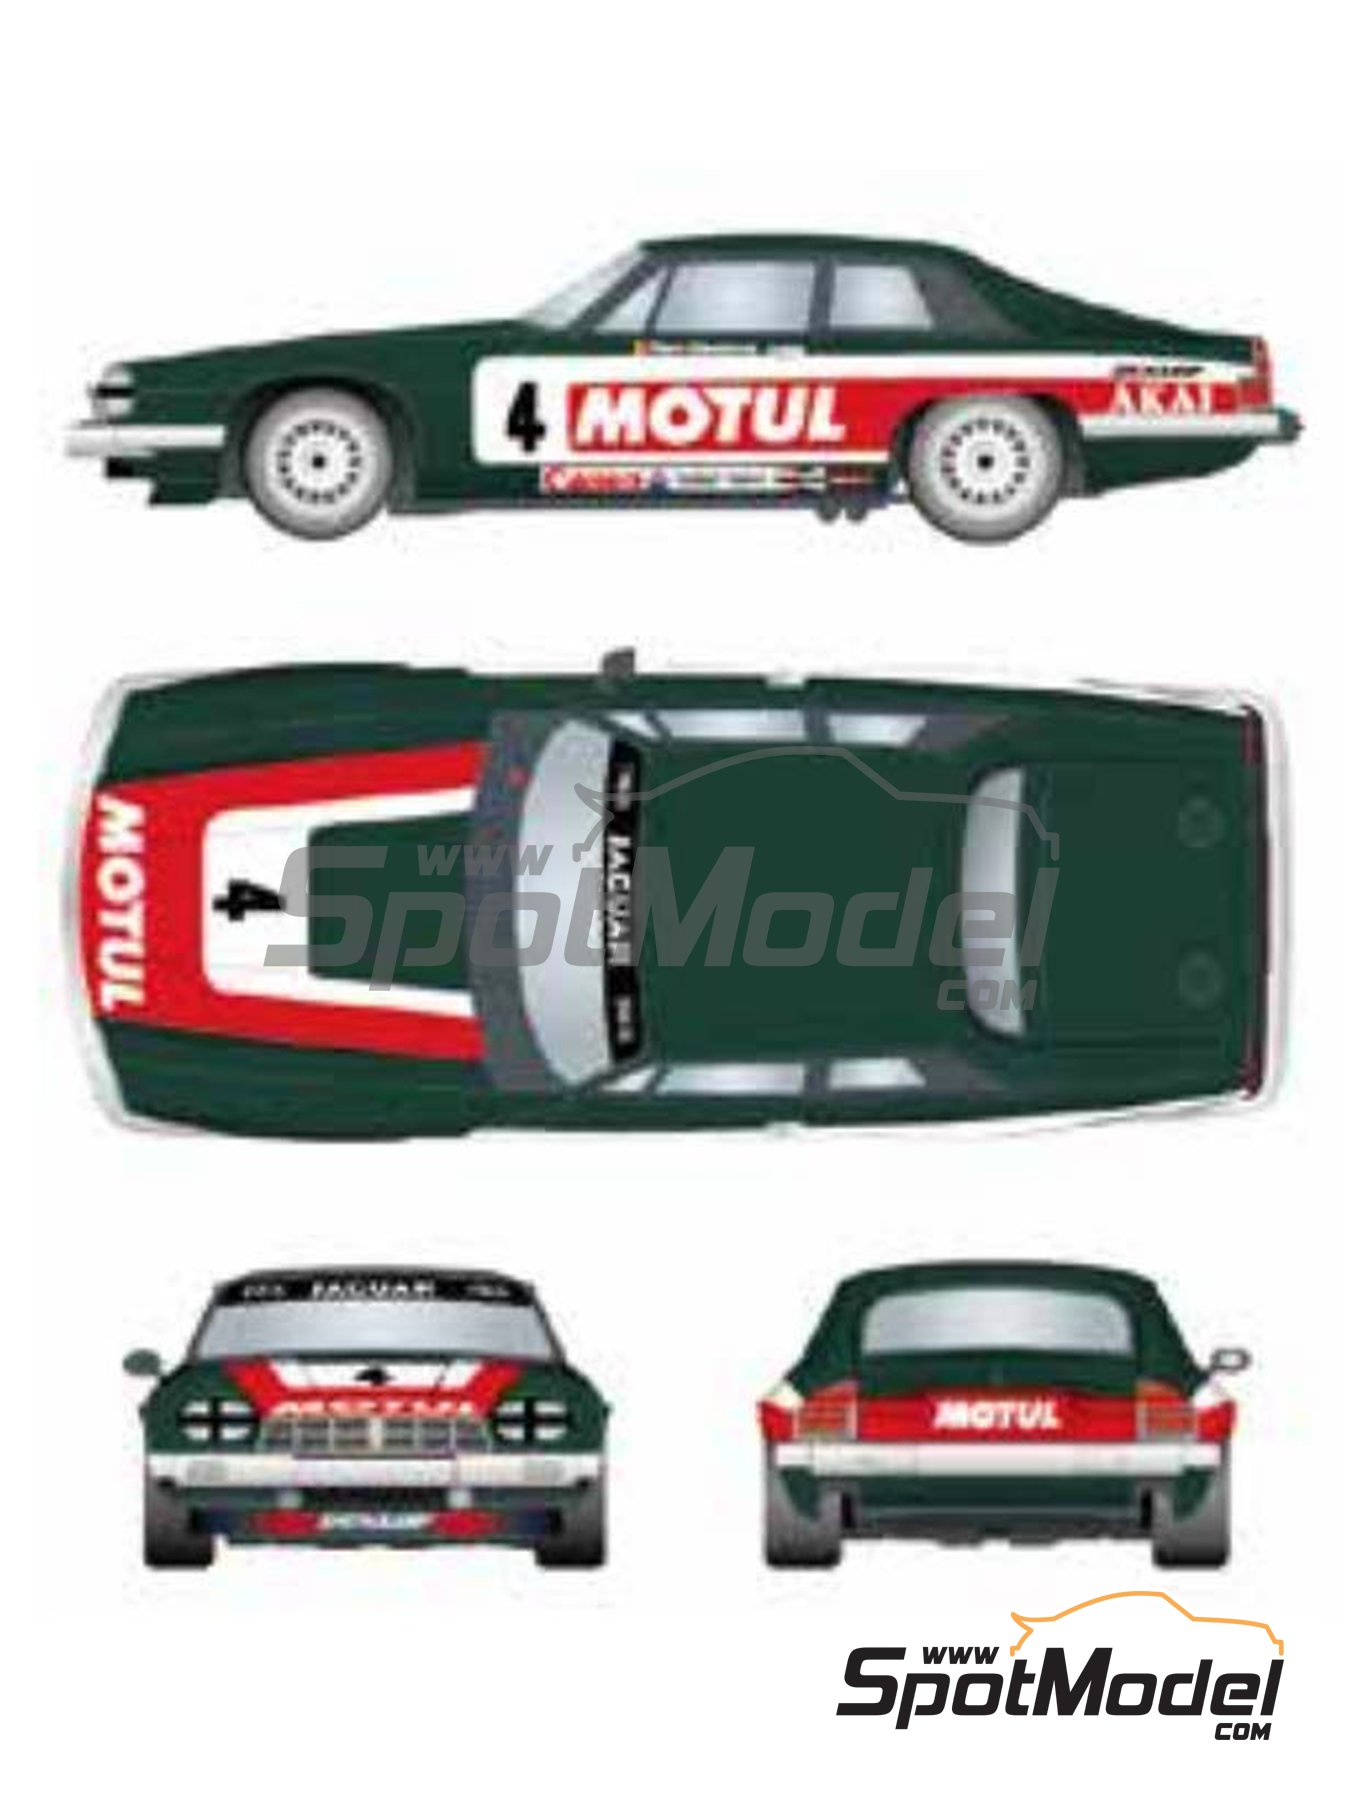 Jaguar XJ-S Motul Akai - RAC Tourist Trophy 1982 | Marking / livery in 1/24 scale manufactured by Studio27 (ref. ST27-DC1201) image